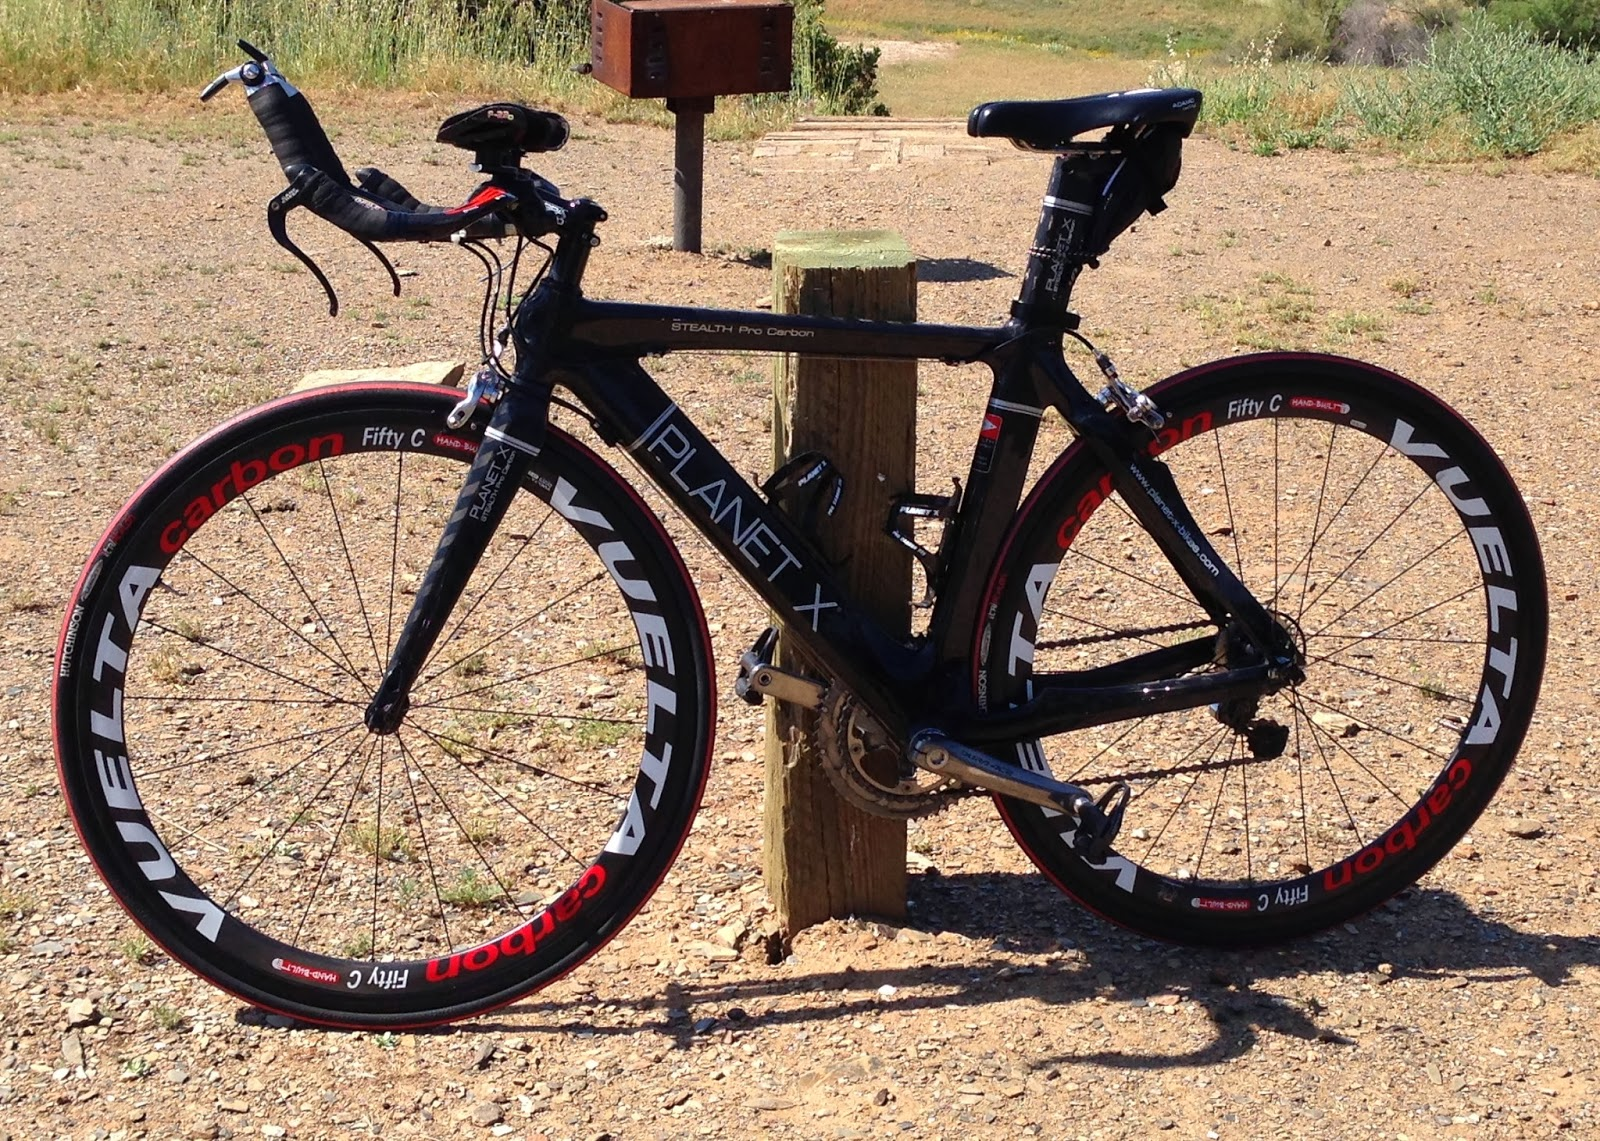 Confessions of a Closet Athlete: FOR SALE - 2010 Planet-X Stealth ...